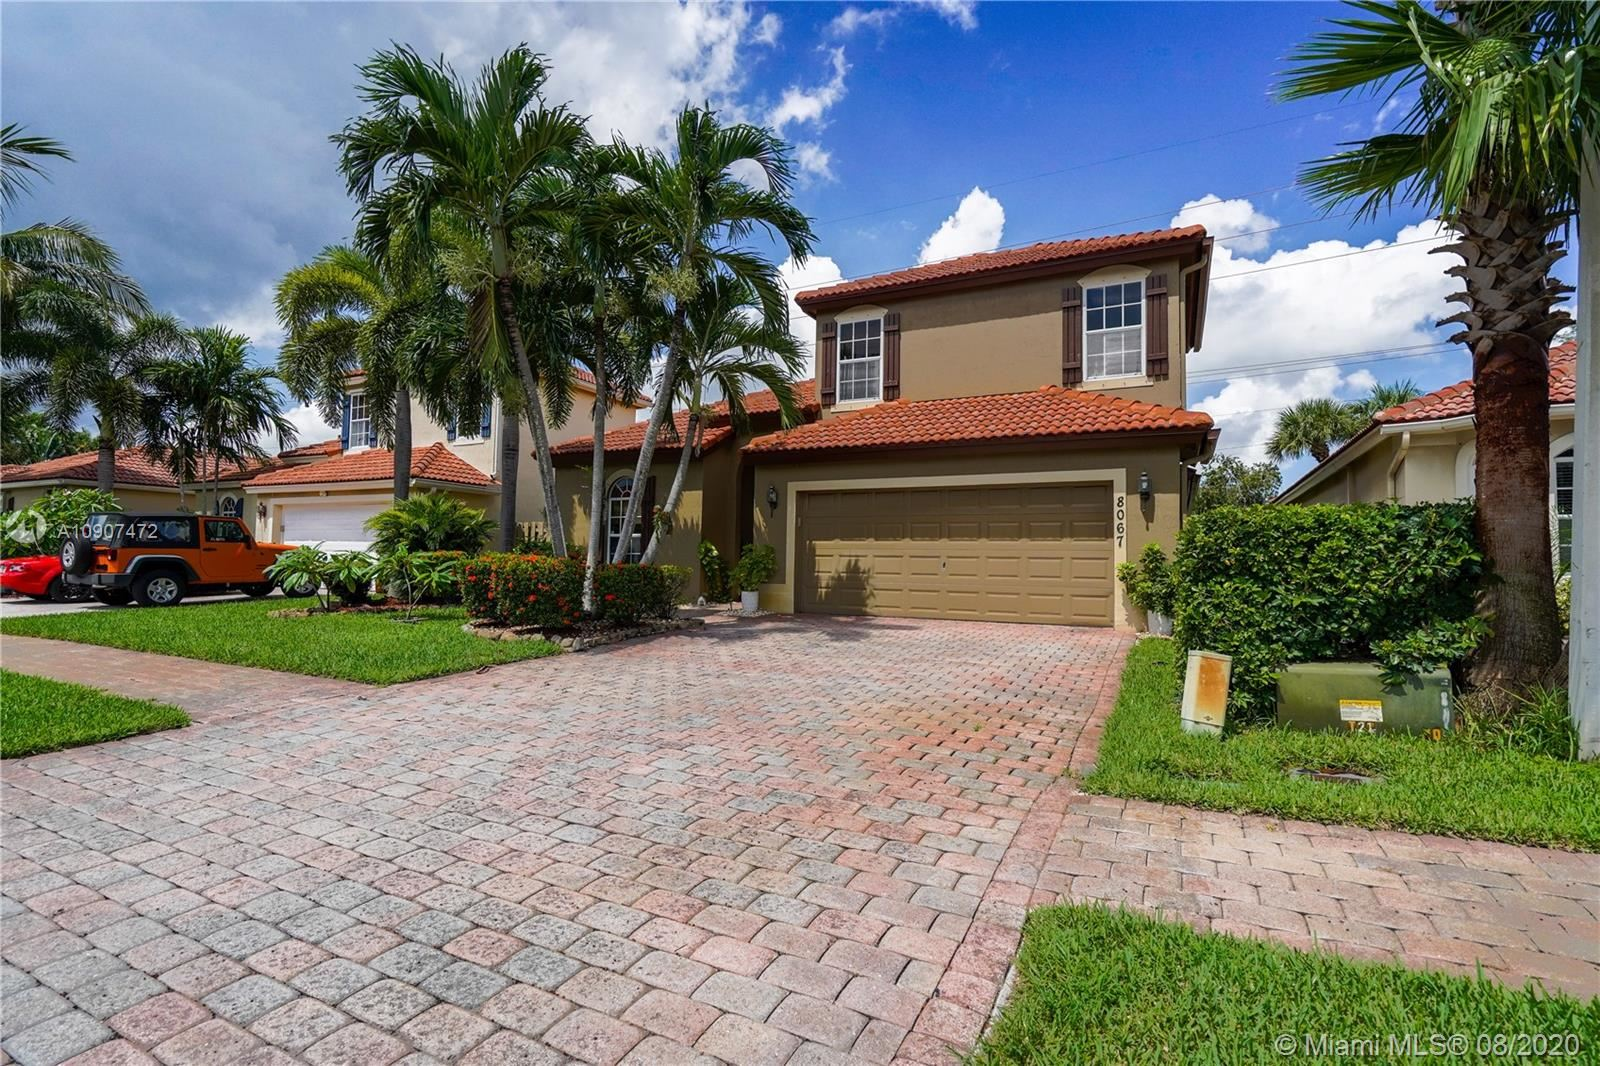 8067 Saw Palmetto Ln, Boynton Beach, FL 33436 - #: A10907472